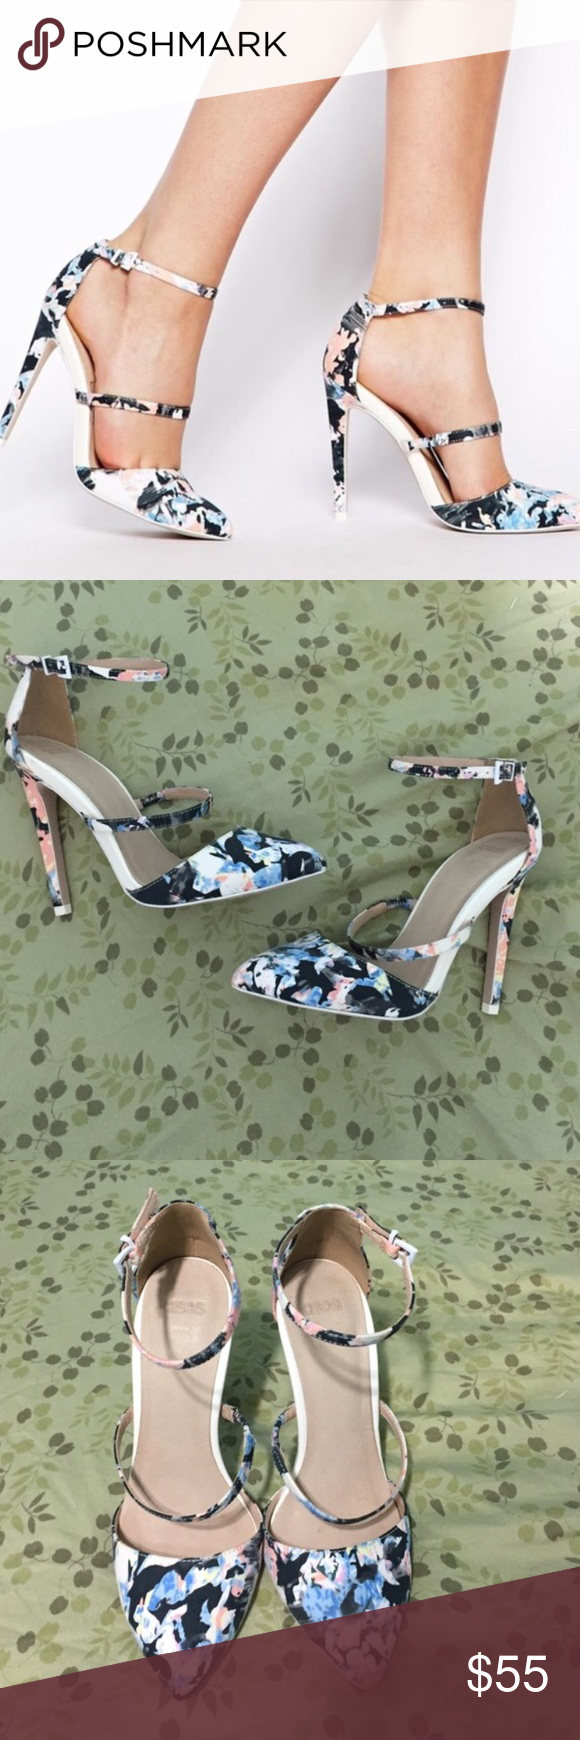 ASOS floral poynter heels Worn a handful of times but in good condition. Will not discuss pricing in comments, only through the offer button. Reasonable offers accepted. ❌No trades❌ ASOS Shoes Heels